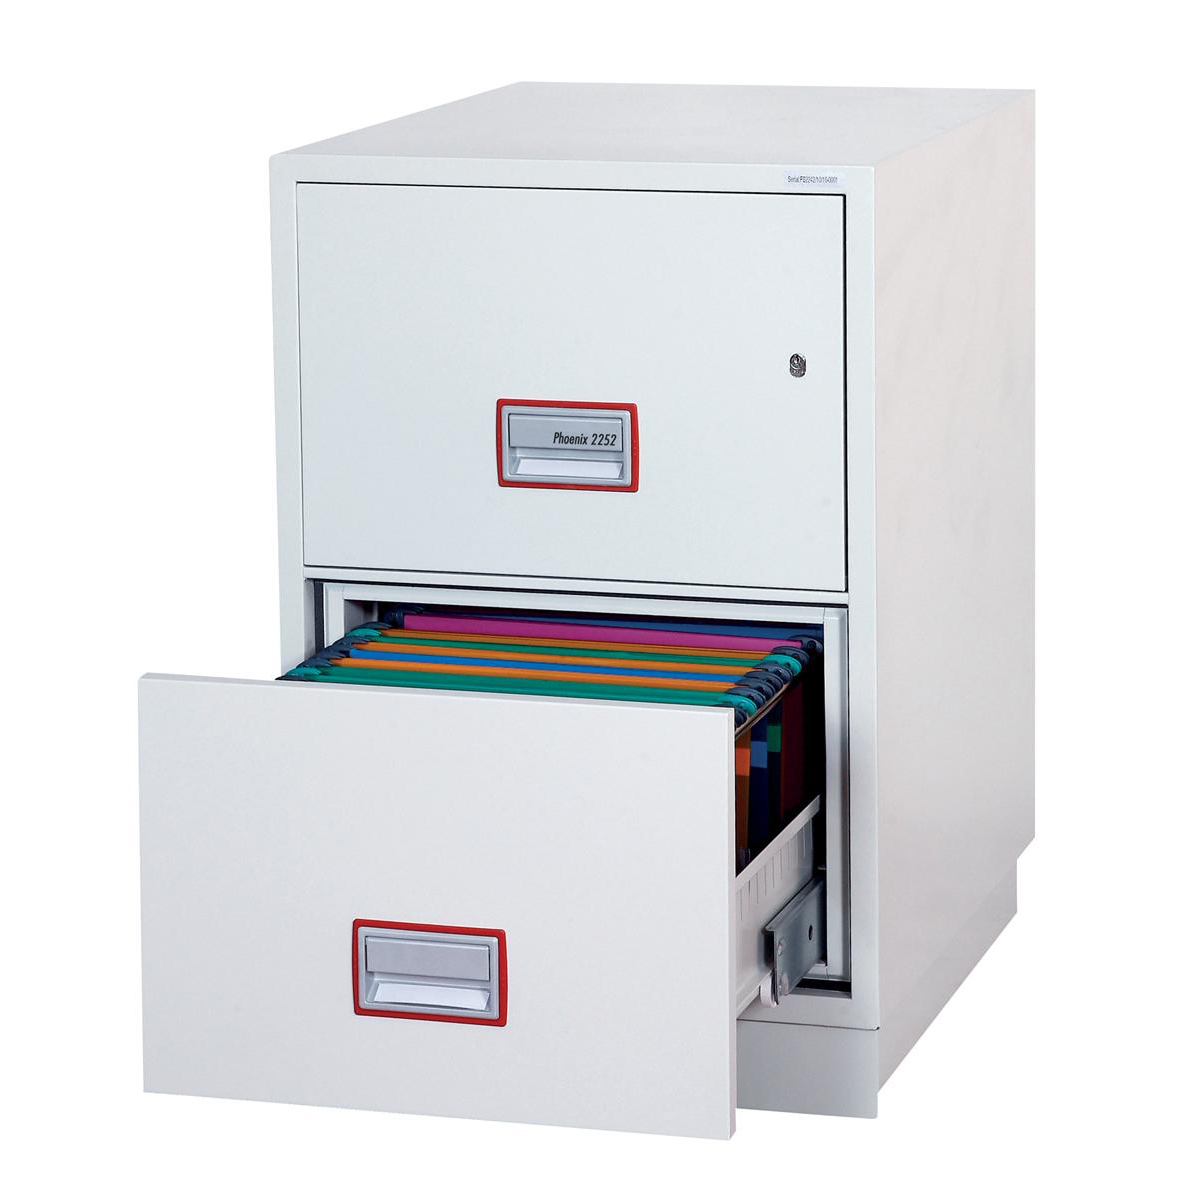 Phoenix Firefile Filing Cabinet Fire Resistant 2 Lockable Drawers 140Kg W530xD675xH720mm Ref FS2252K